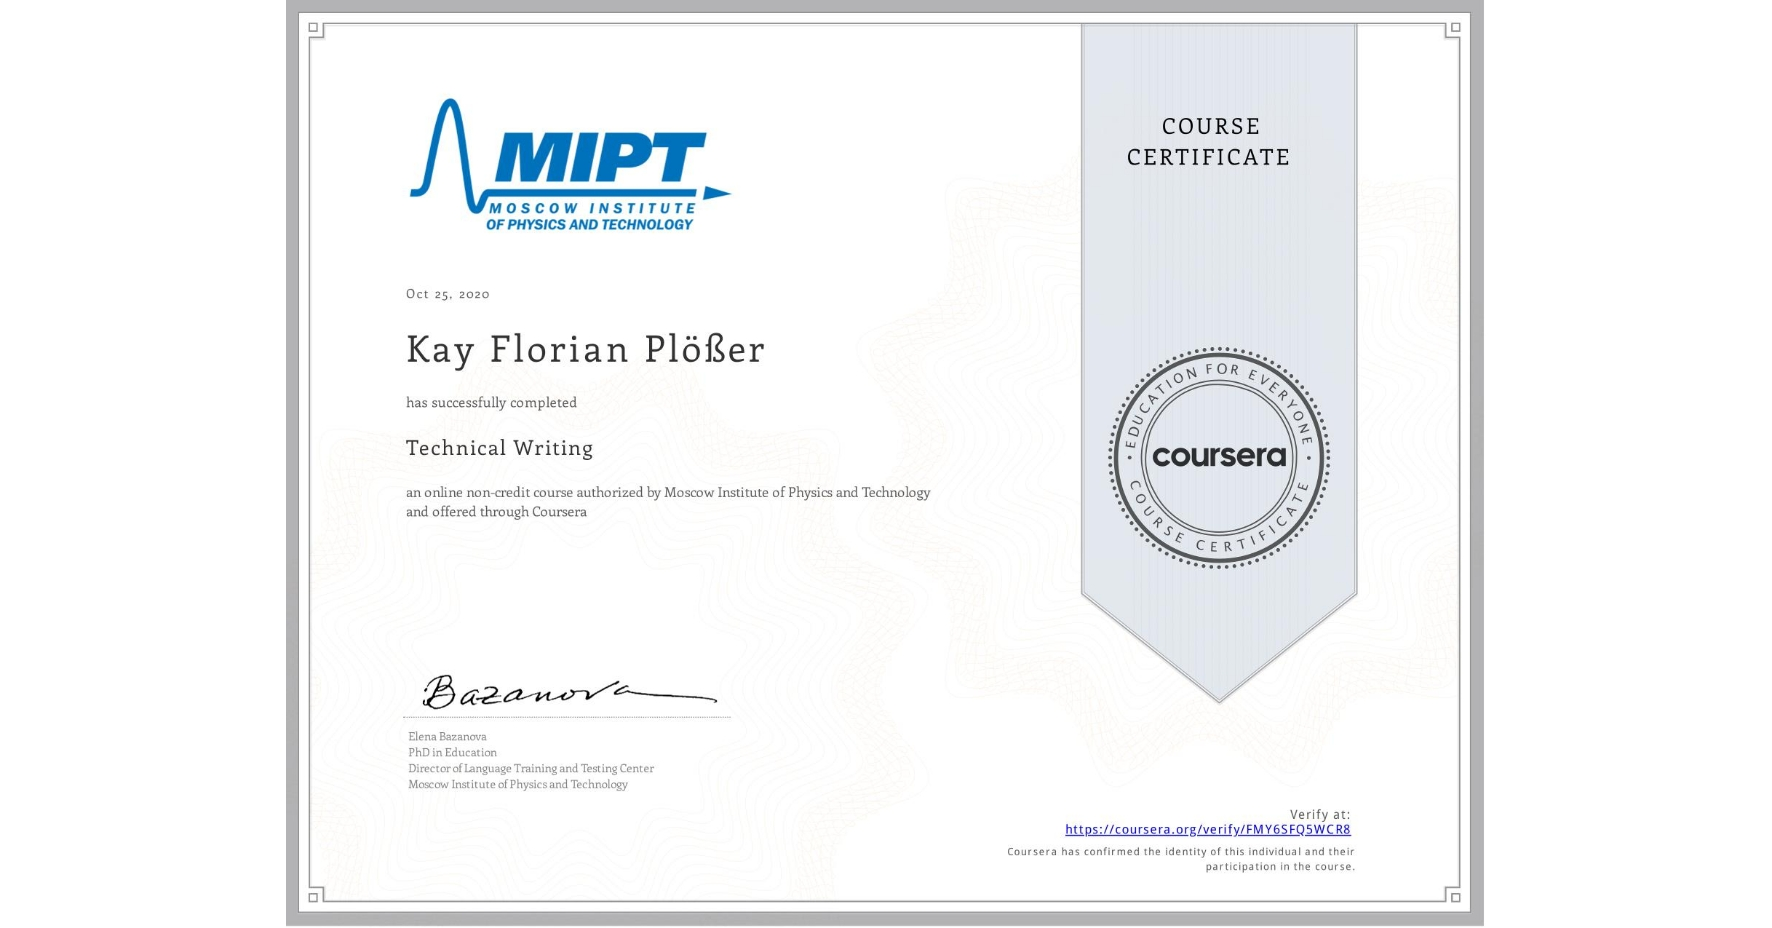 View certificate for Kay Florian Plößer, Technical Writing, an online non-credit course authorized by Moscow Institute of Physics and Technology and offered through Coursera